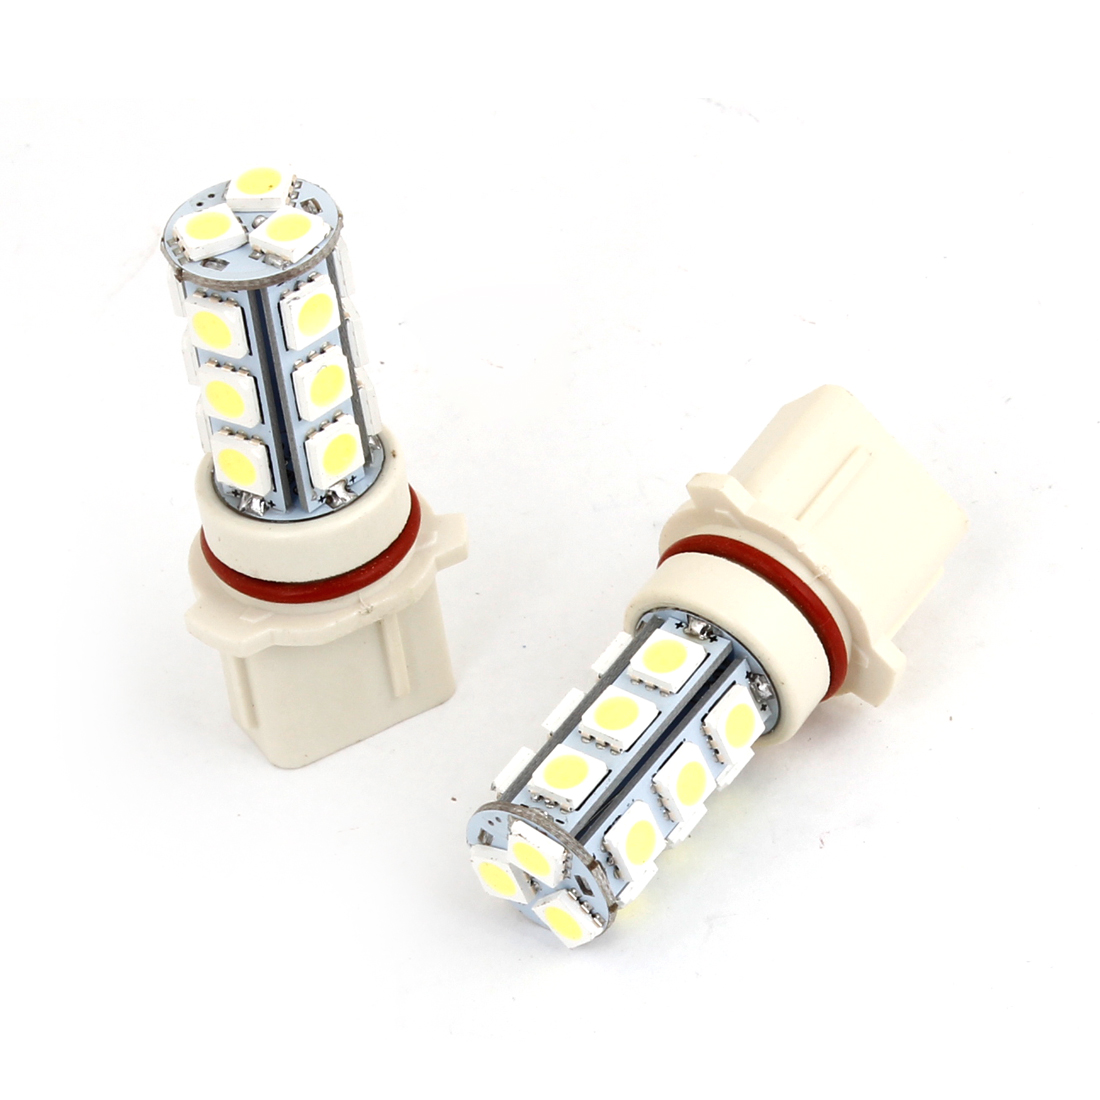 2 Pcs Car Auto P13W Bayonet 5050 SMD 18 LED White Fog Head Light Bulb Lamp DC 12V